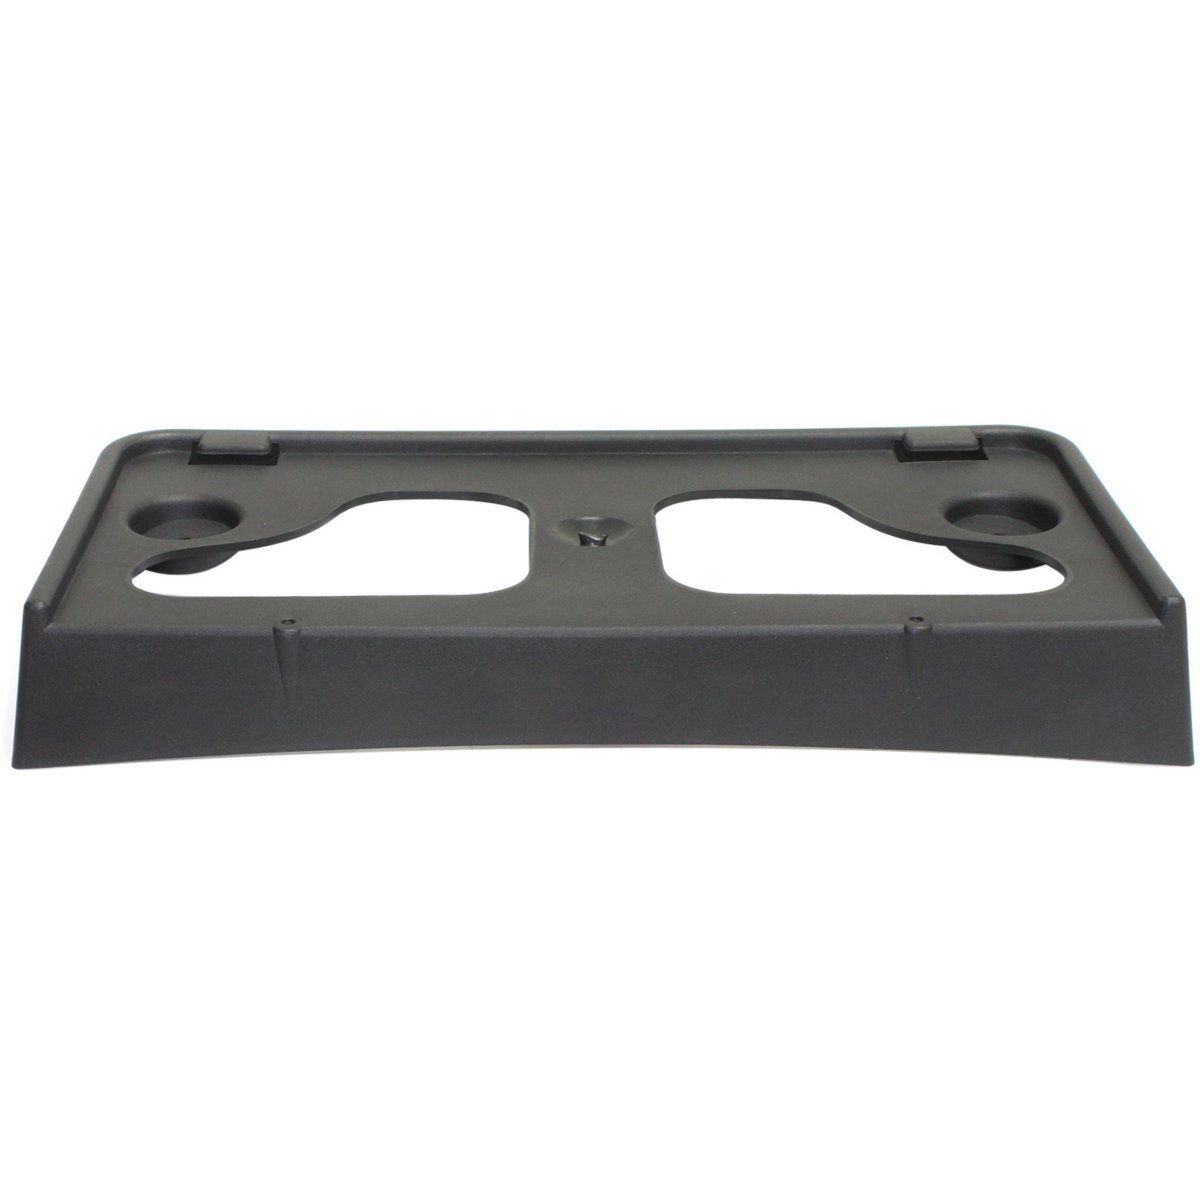 BB Auto New Front License Plate Bracket Tag Holder Direct Replacement for 2013-2019 Ford Taurus FO1068150